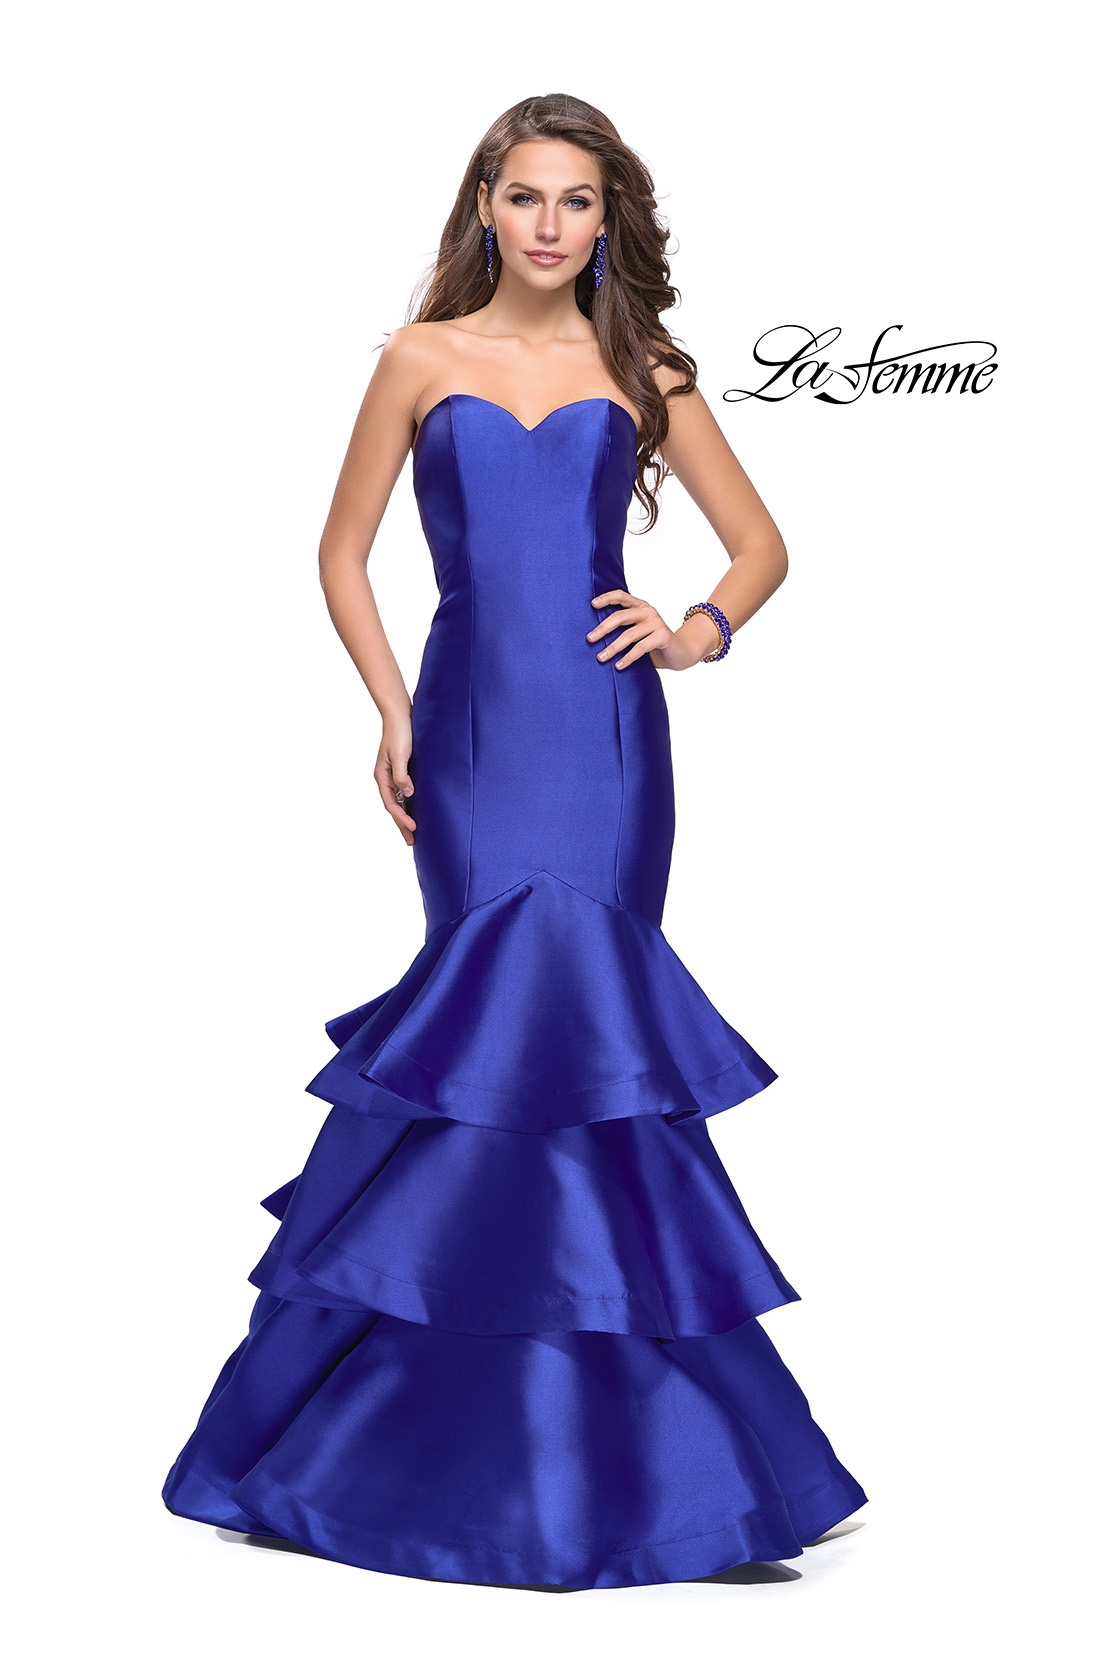 397390c2cbde Picture of: Long Mikado Mermaid Gown with Tiered Ruffle Skirt, Style: 25432,